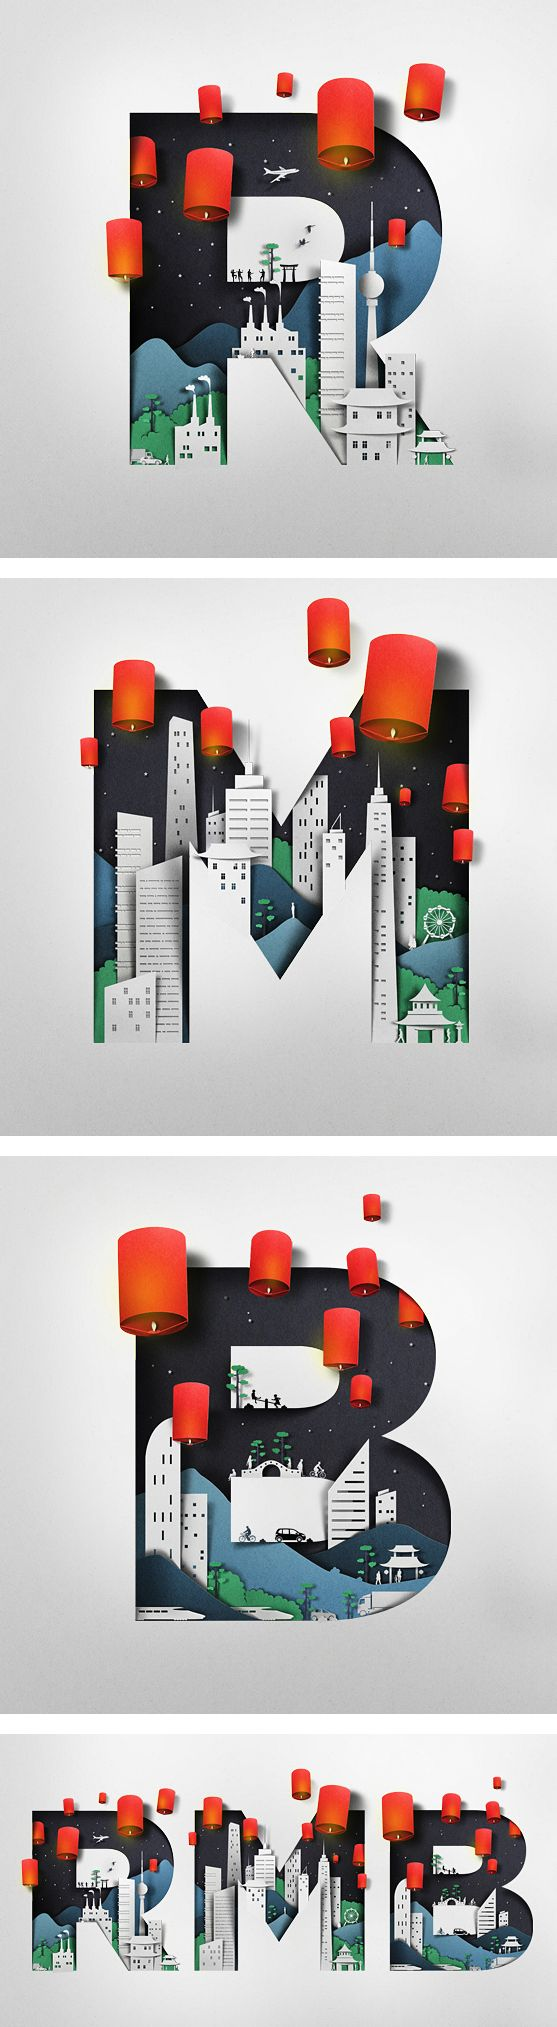 Paper & illusion.. http://arcreactions.com/services/seo/